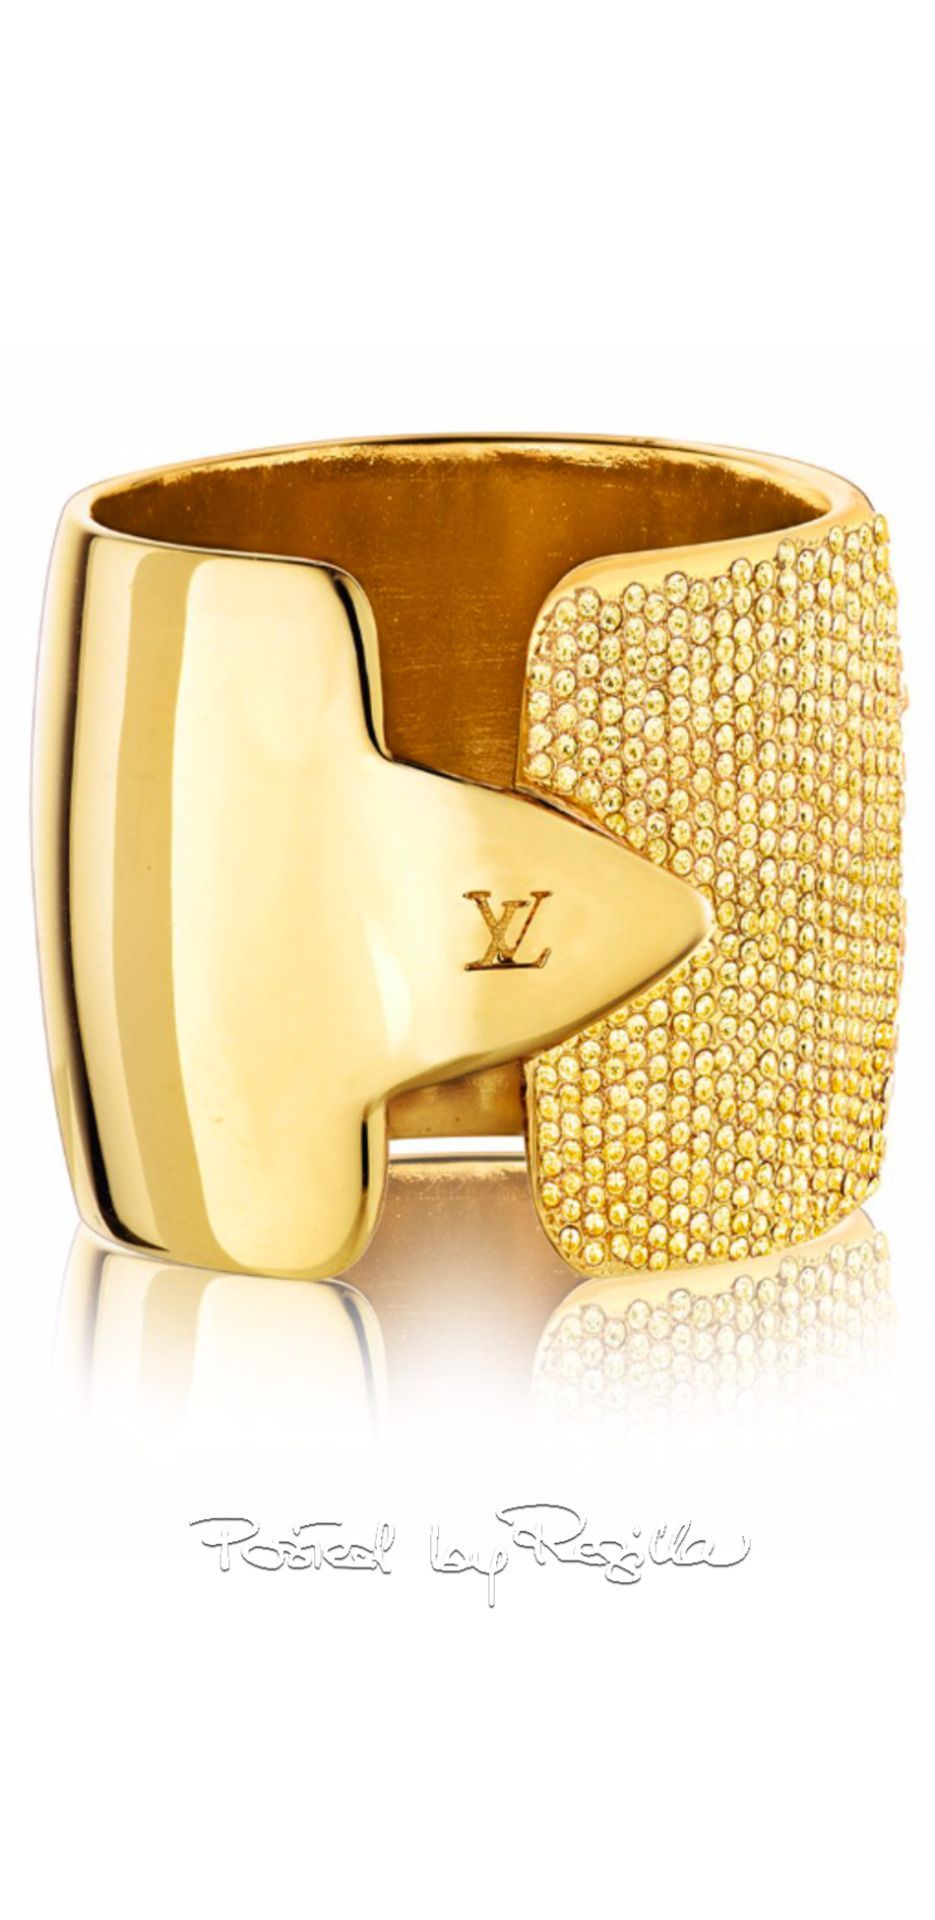 Regilla louis vuitton ring gold finished brass metal micropaved